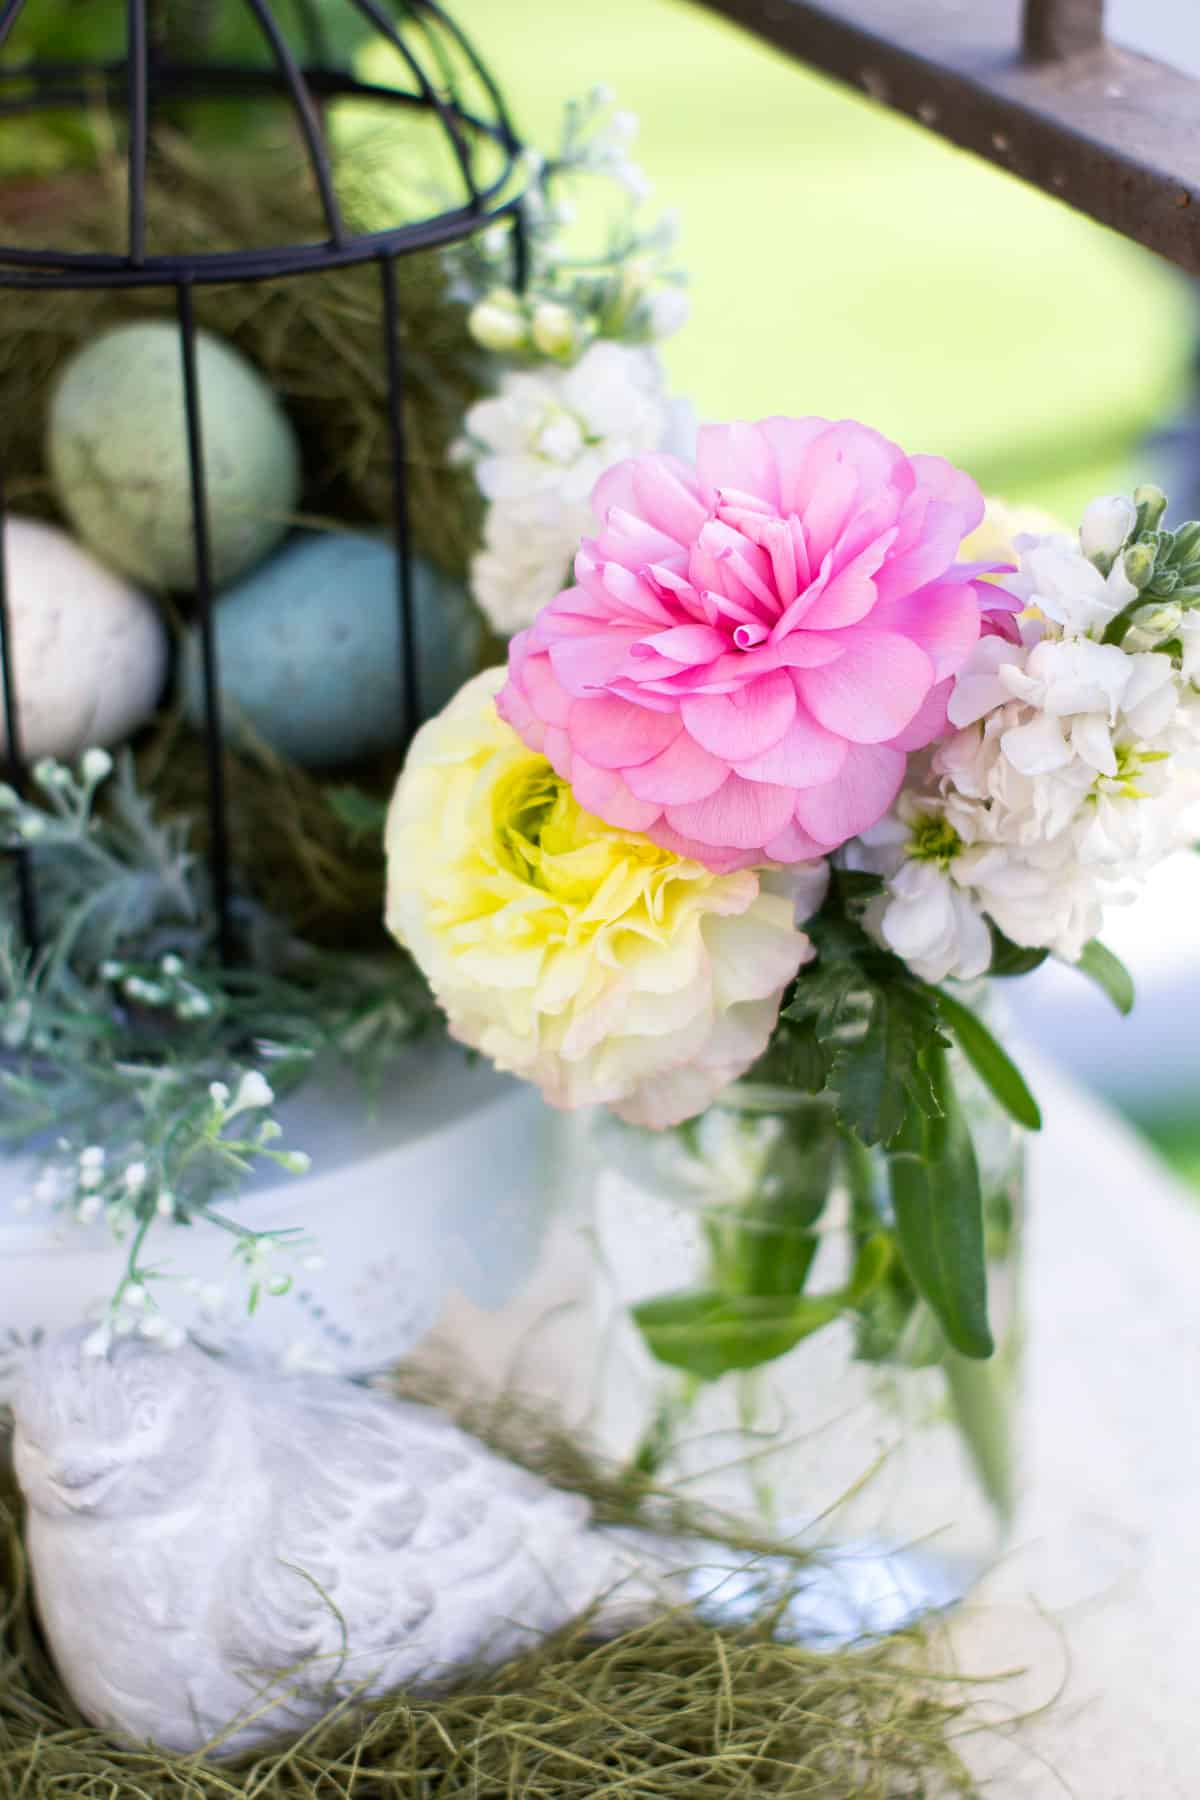 spring bird cage pinterest challenge mason jar with fresh flowers and eggs in background